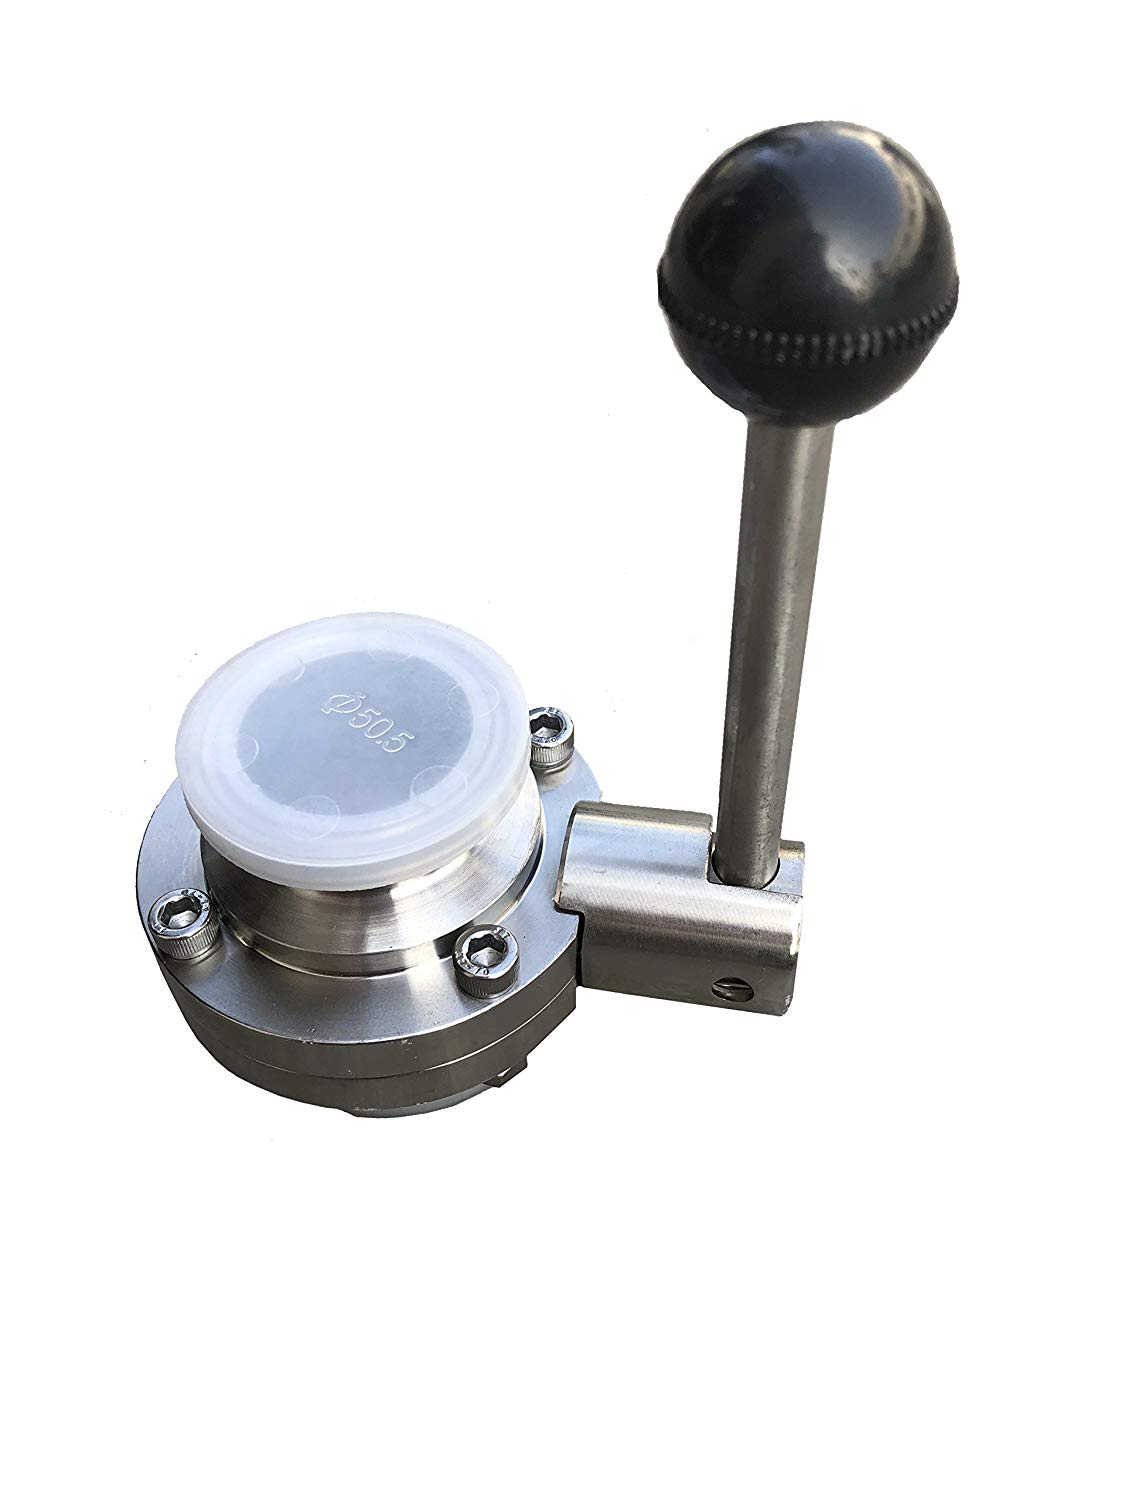 for 4 Valves Silicone Seat w// Dixon Sanitary B5102 Butterfly Valve Repair Kit Bushings 2